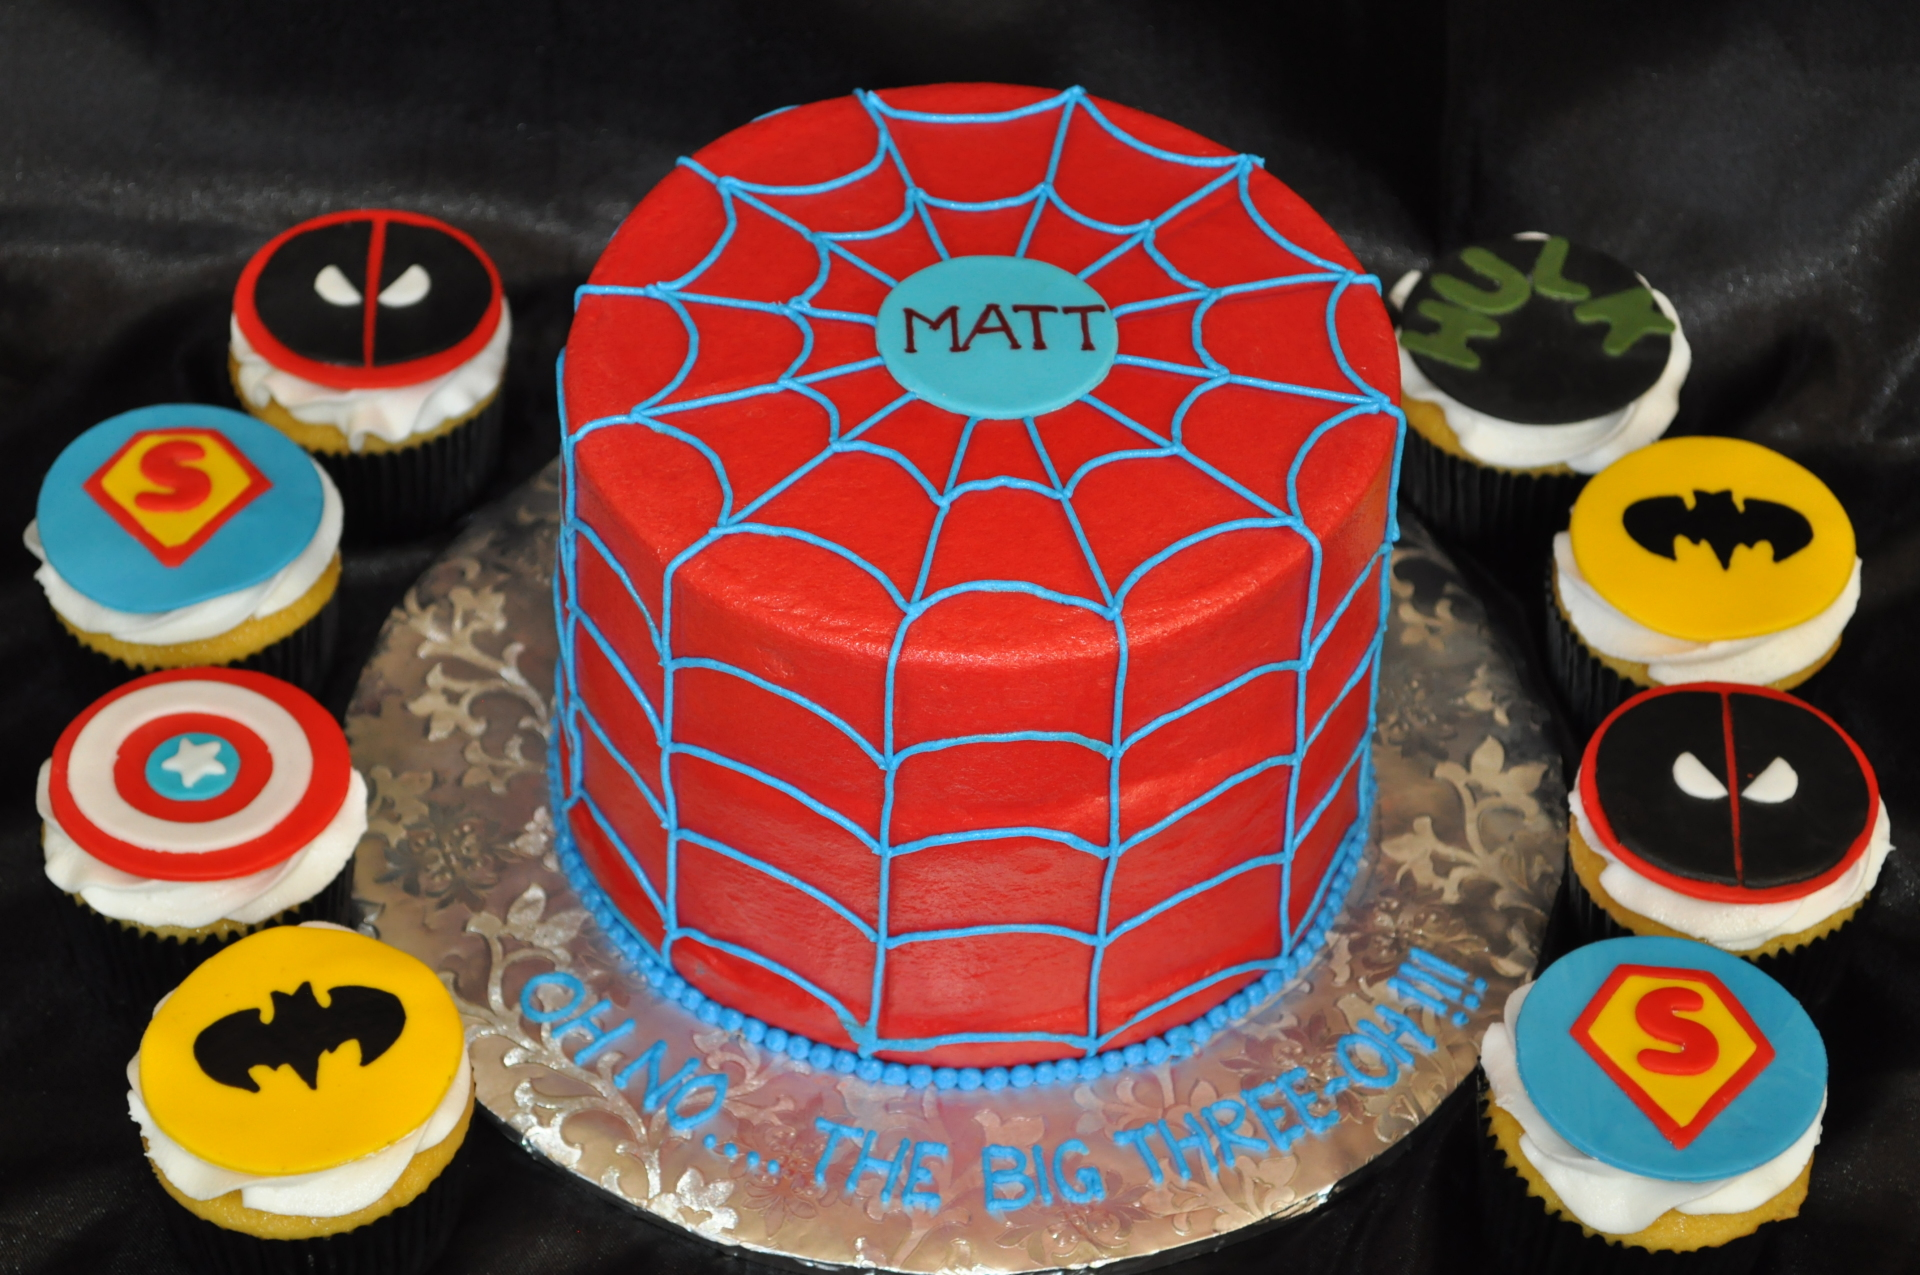 Spiderman cake, Superheroes cupcakes